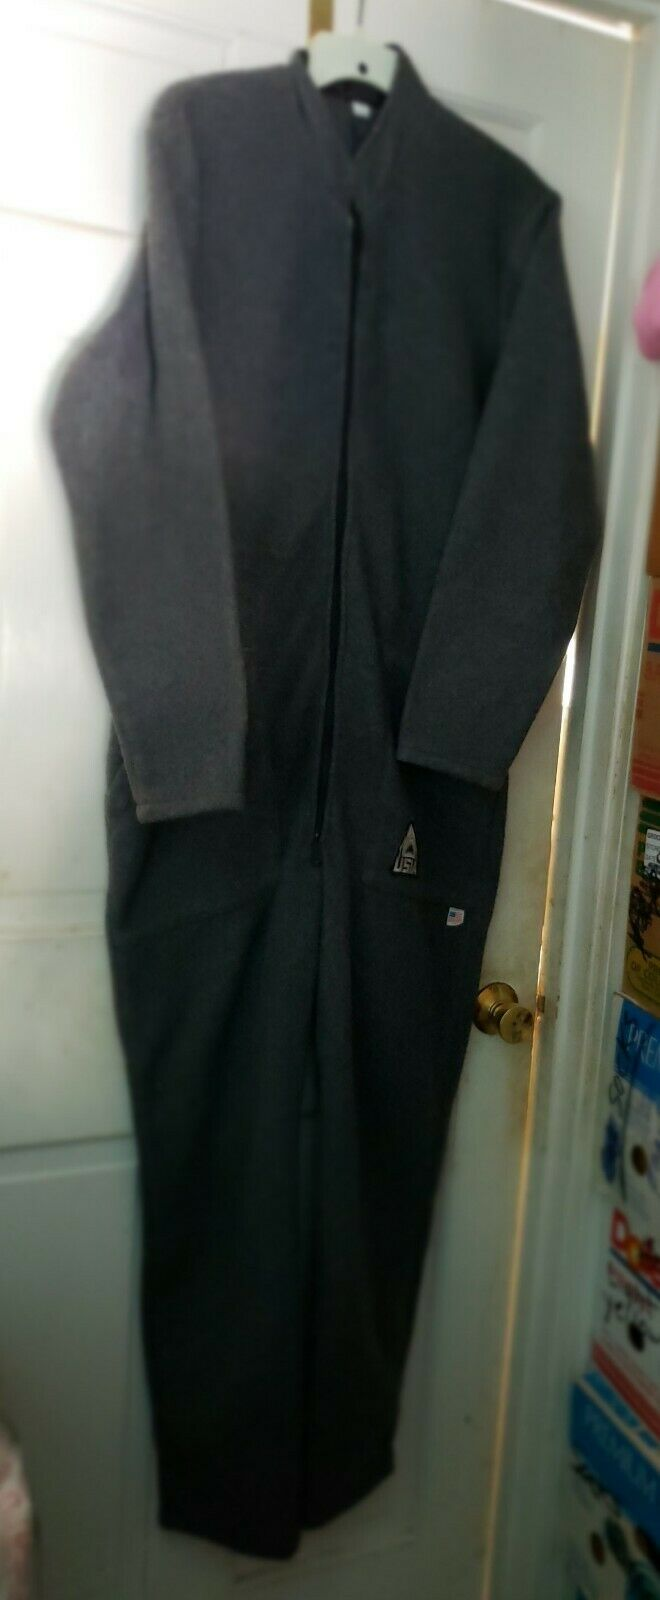 USIA Exotherm 1 Fleece Thermal DrySuit  Made  in USA See Measurements VGC  official quality